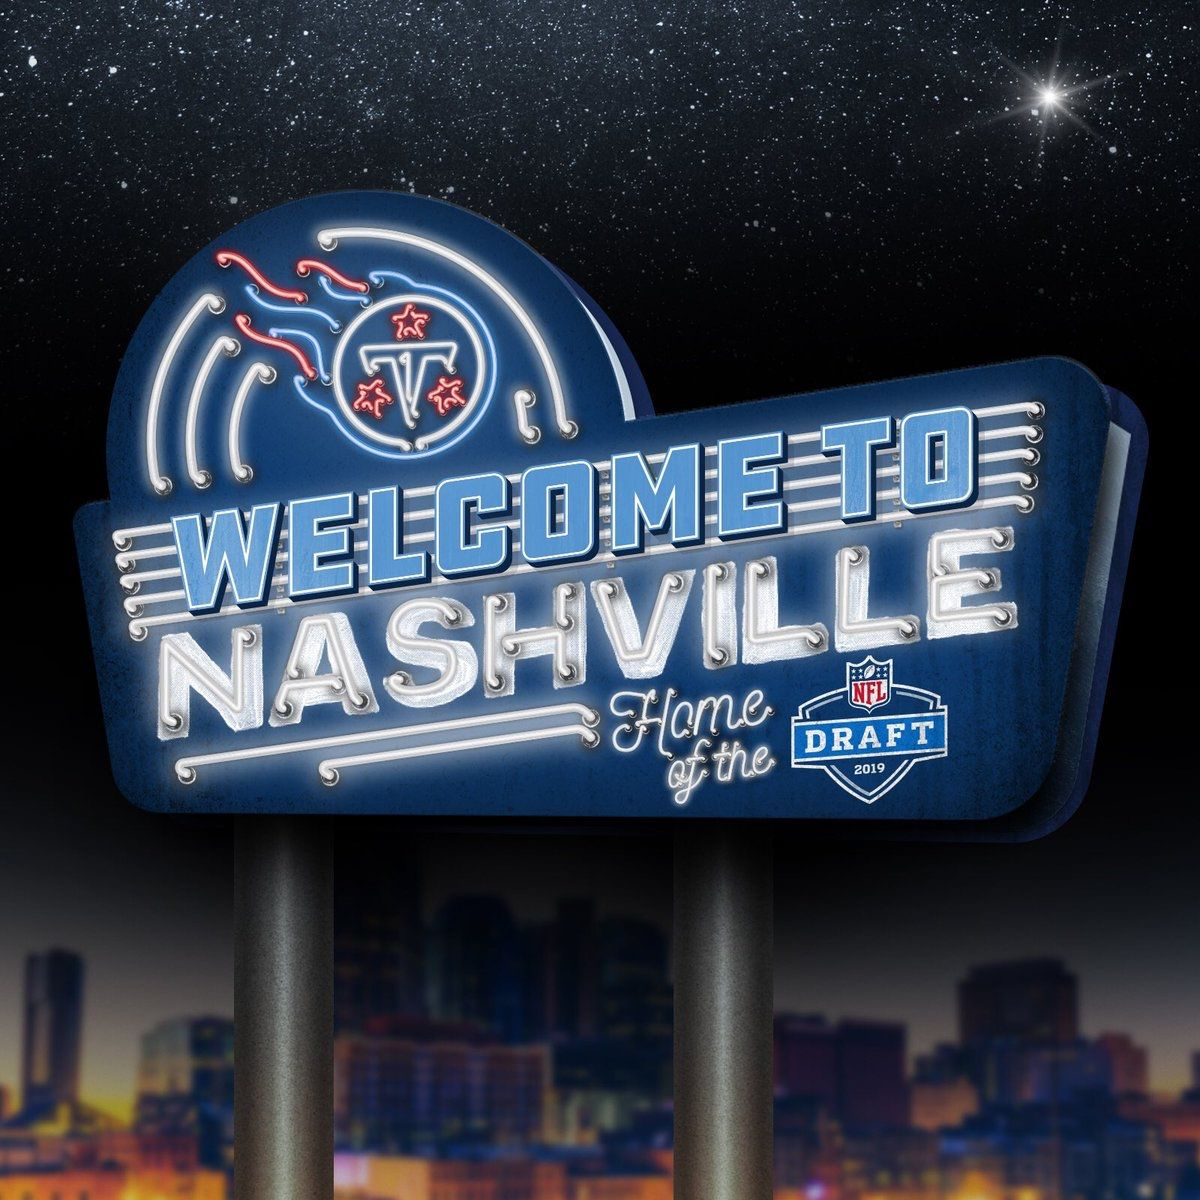 90cdce25d040502af50292b6e2ba9539 - How To Get Free Tickets For Nfl Draft In Nashville